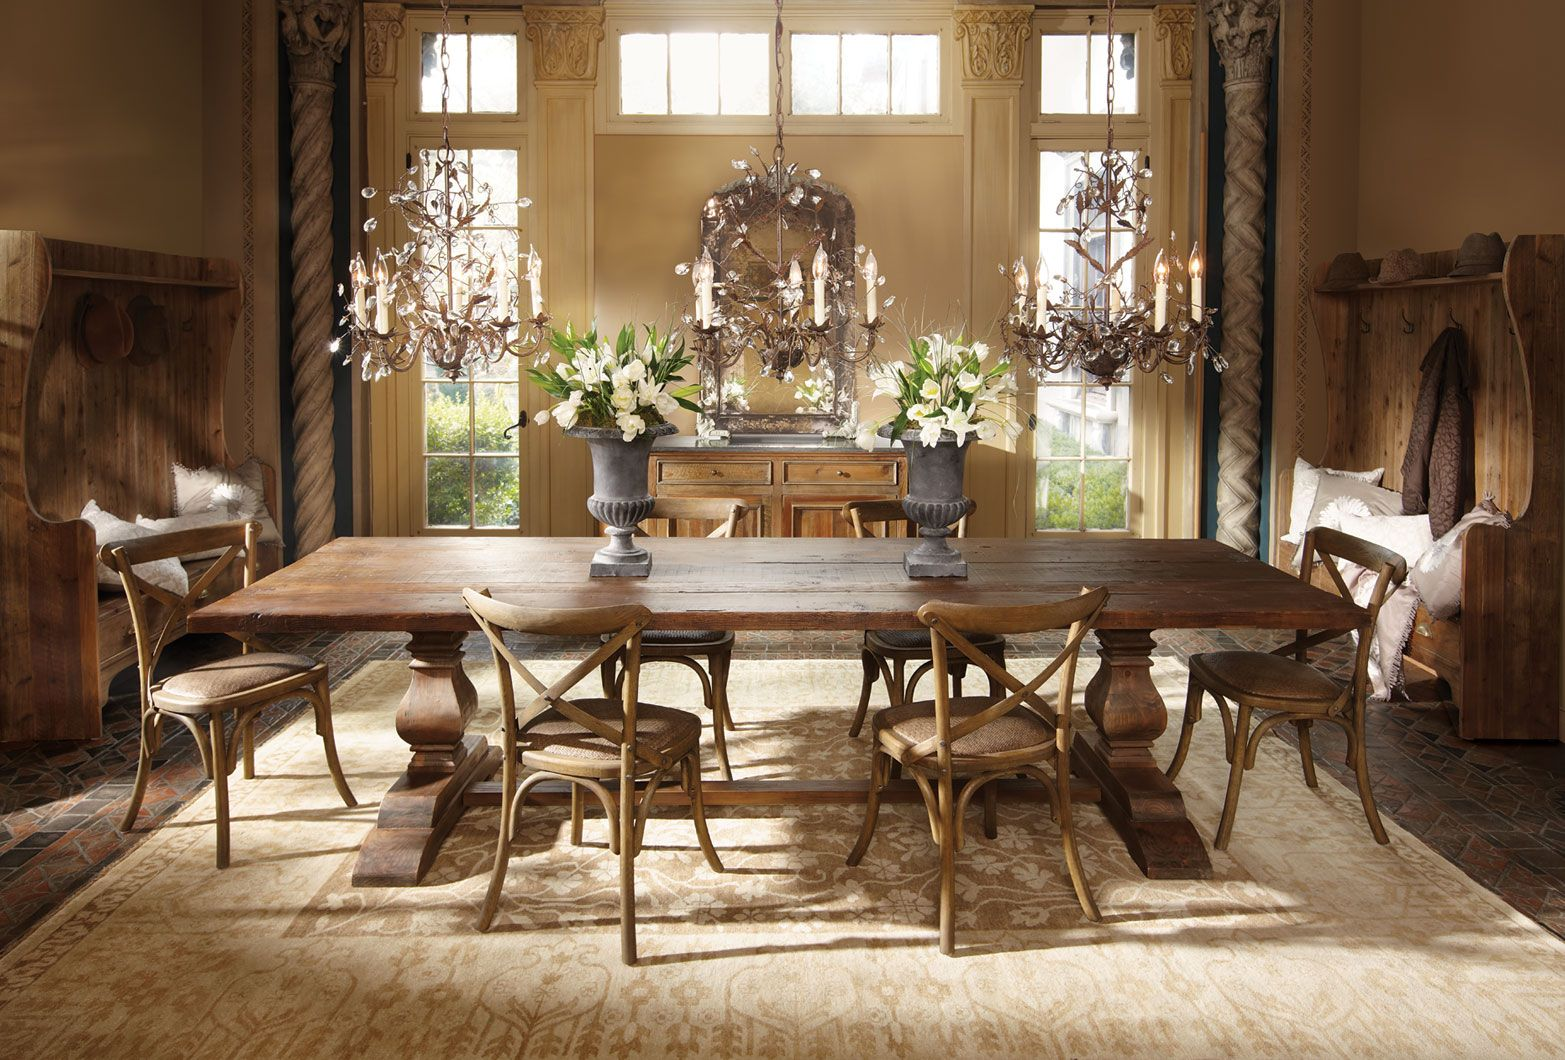 I Would Change The Chairs For My Style Dining Room Furniture